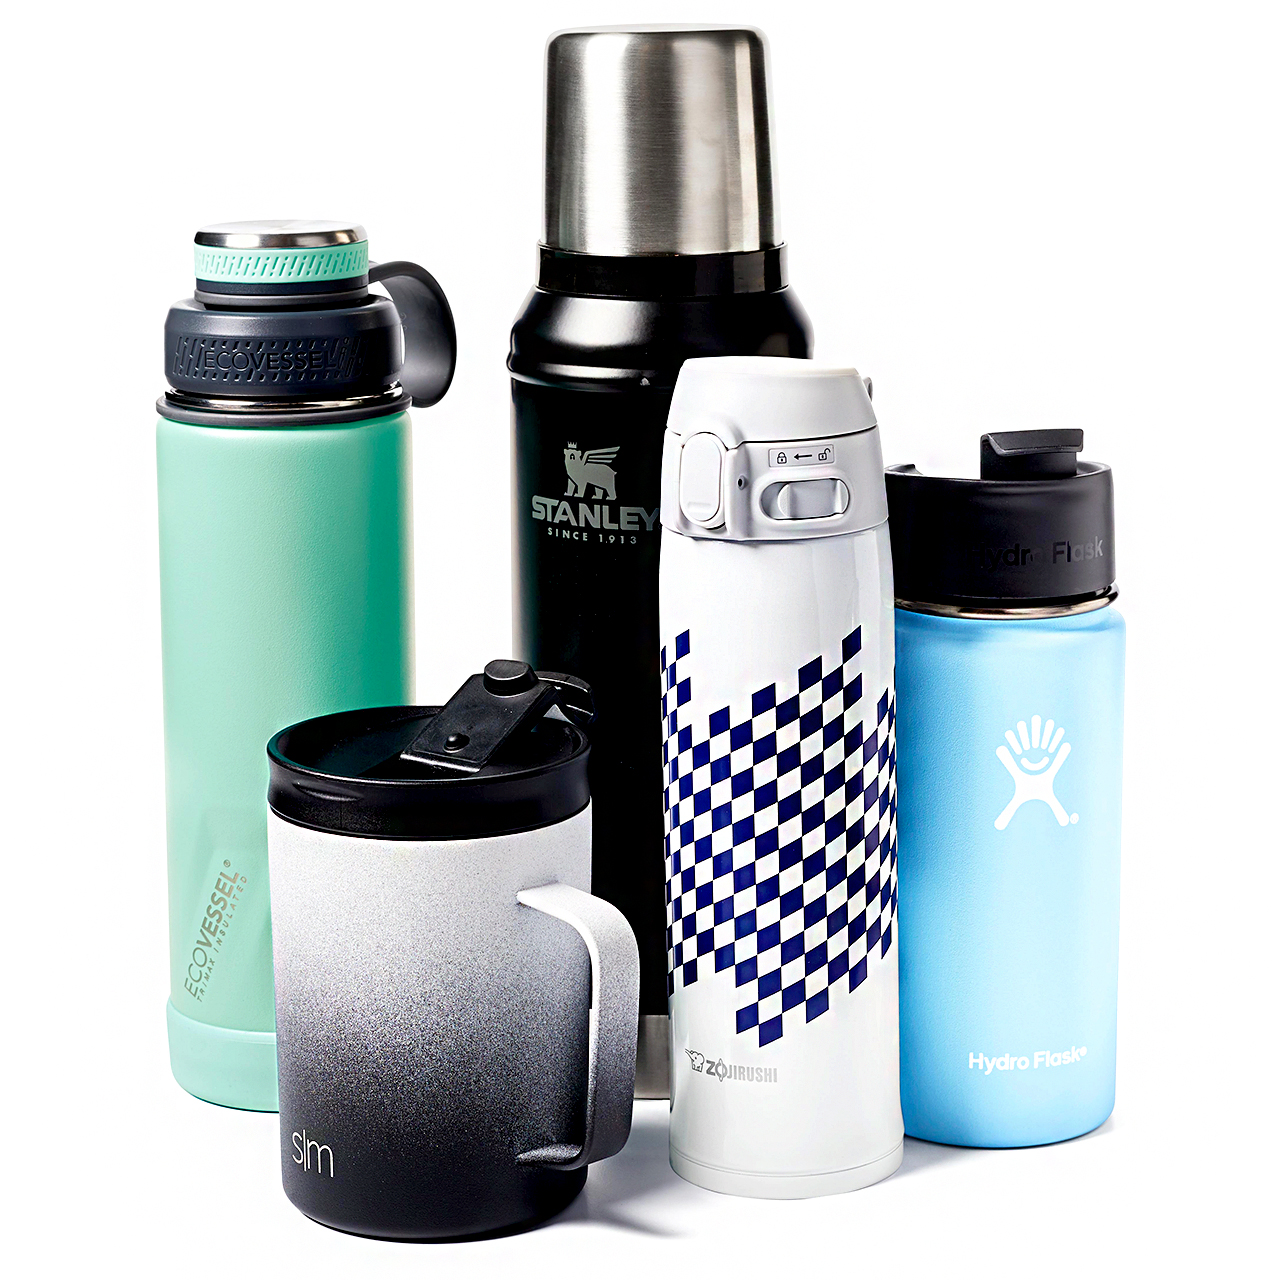 Collection of travel mugs